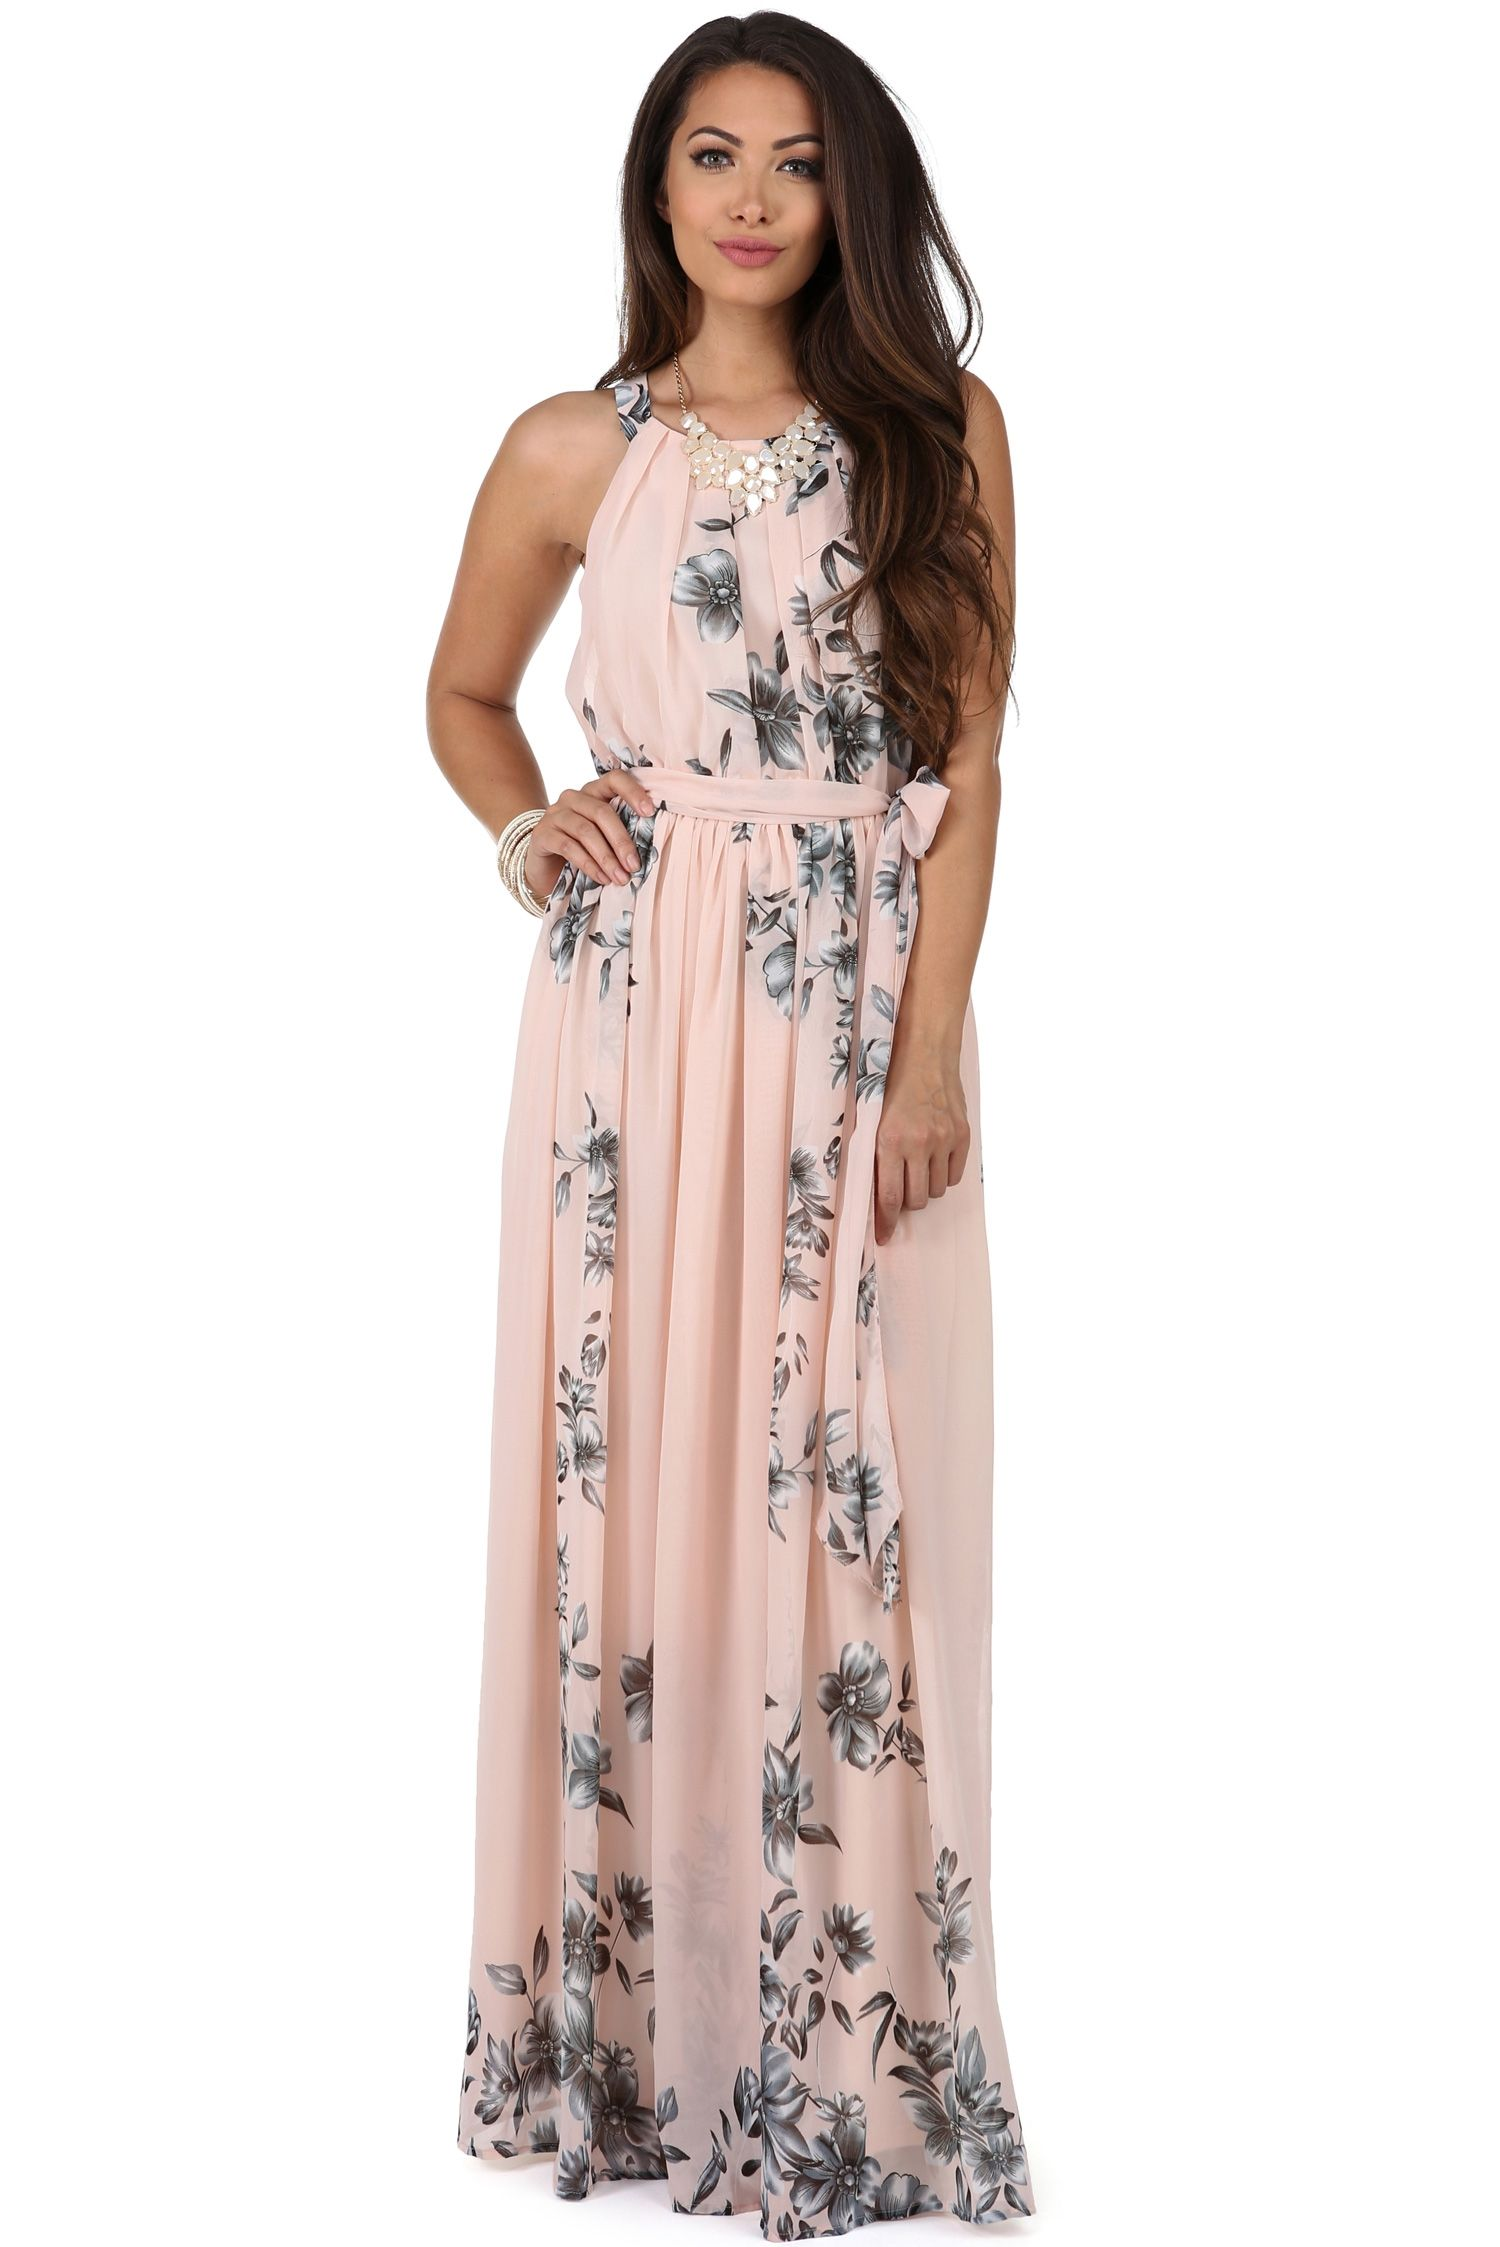 Pink dress to wear to a wedding  Soft Pink Romantic Floral Maxi Dress  Floral maxi dress Floral